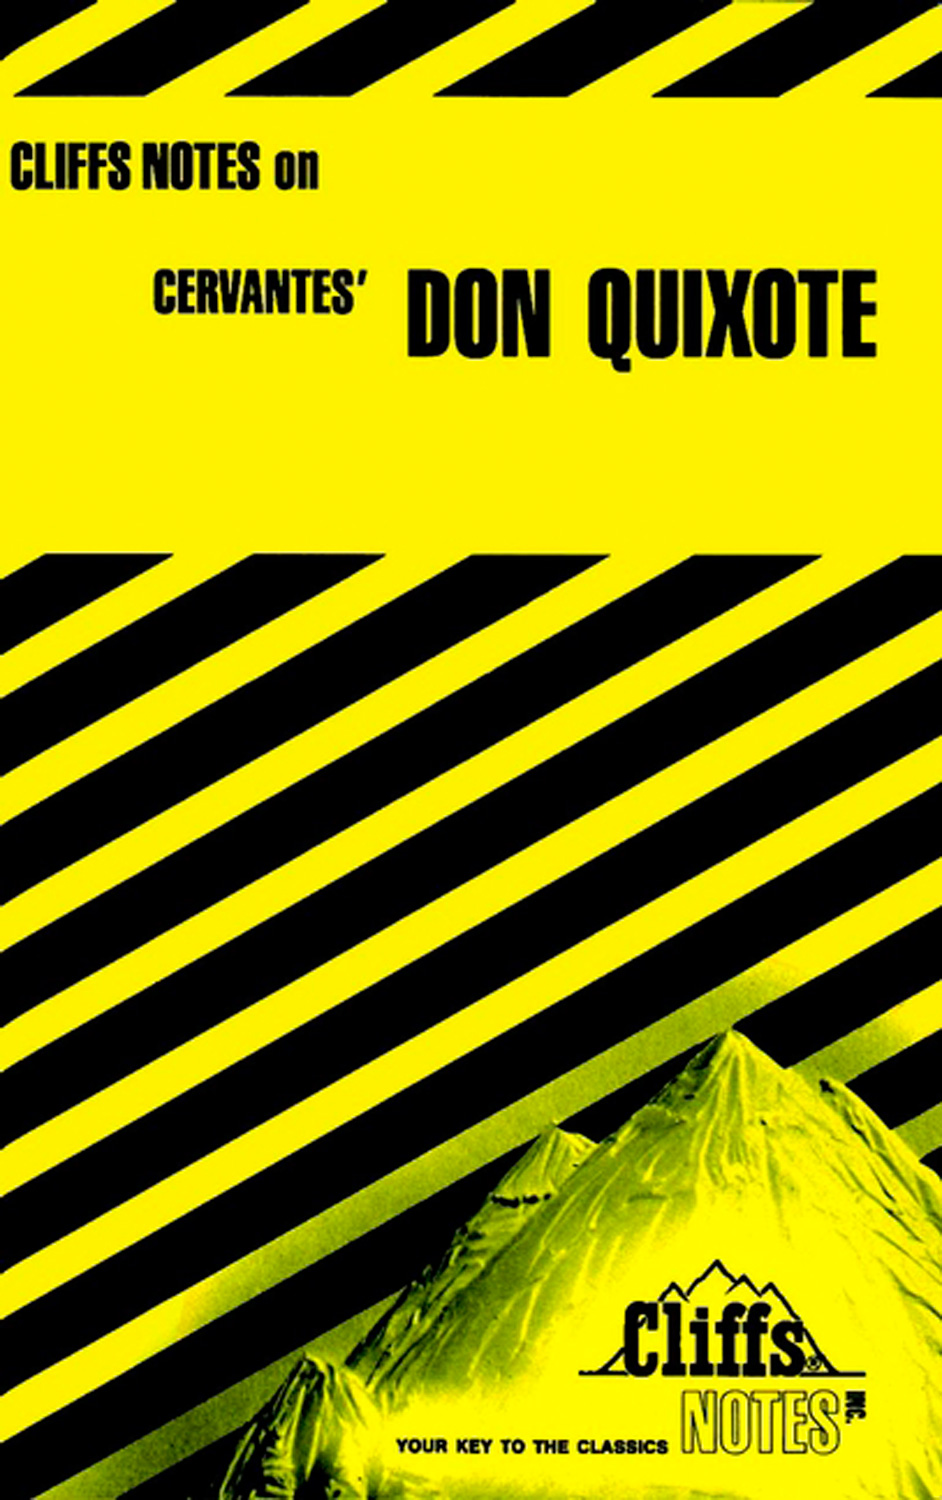 CliffsNotes on Cervantes' Don Quixote-9780822004158